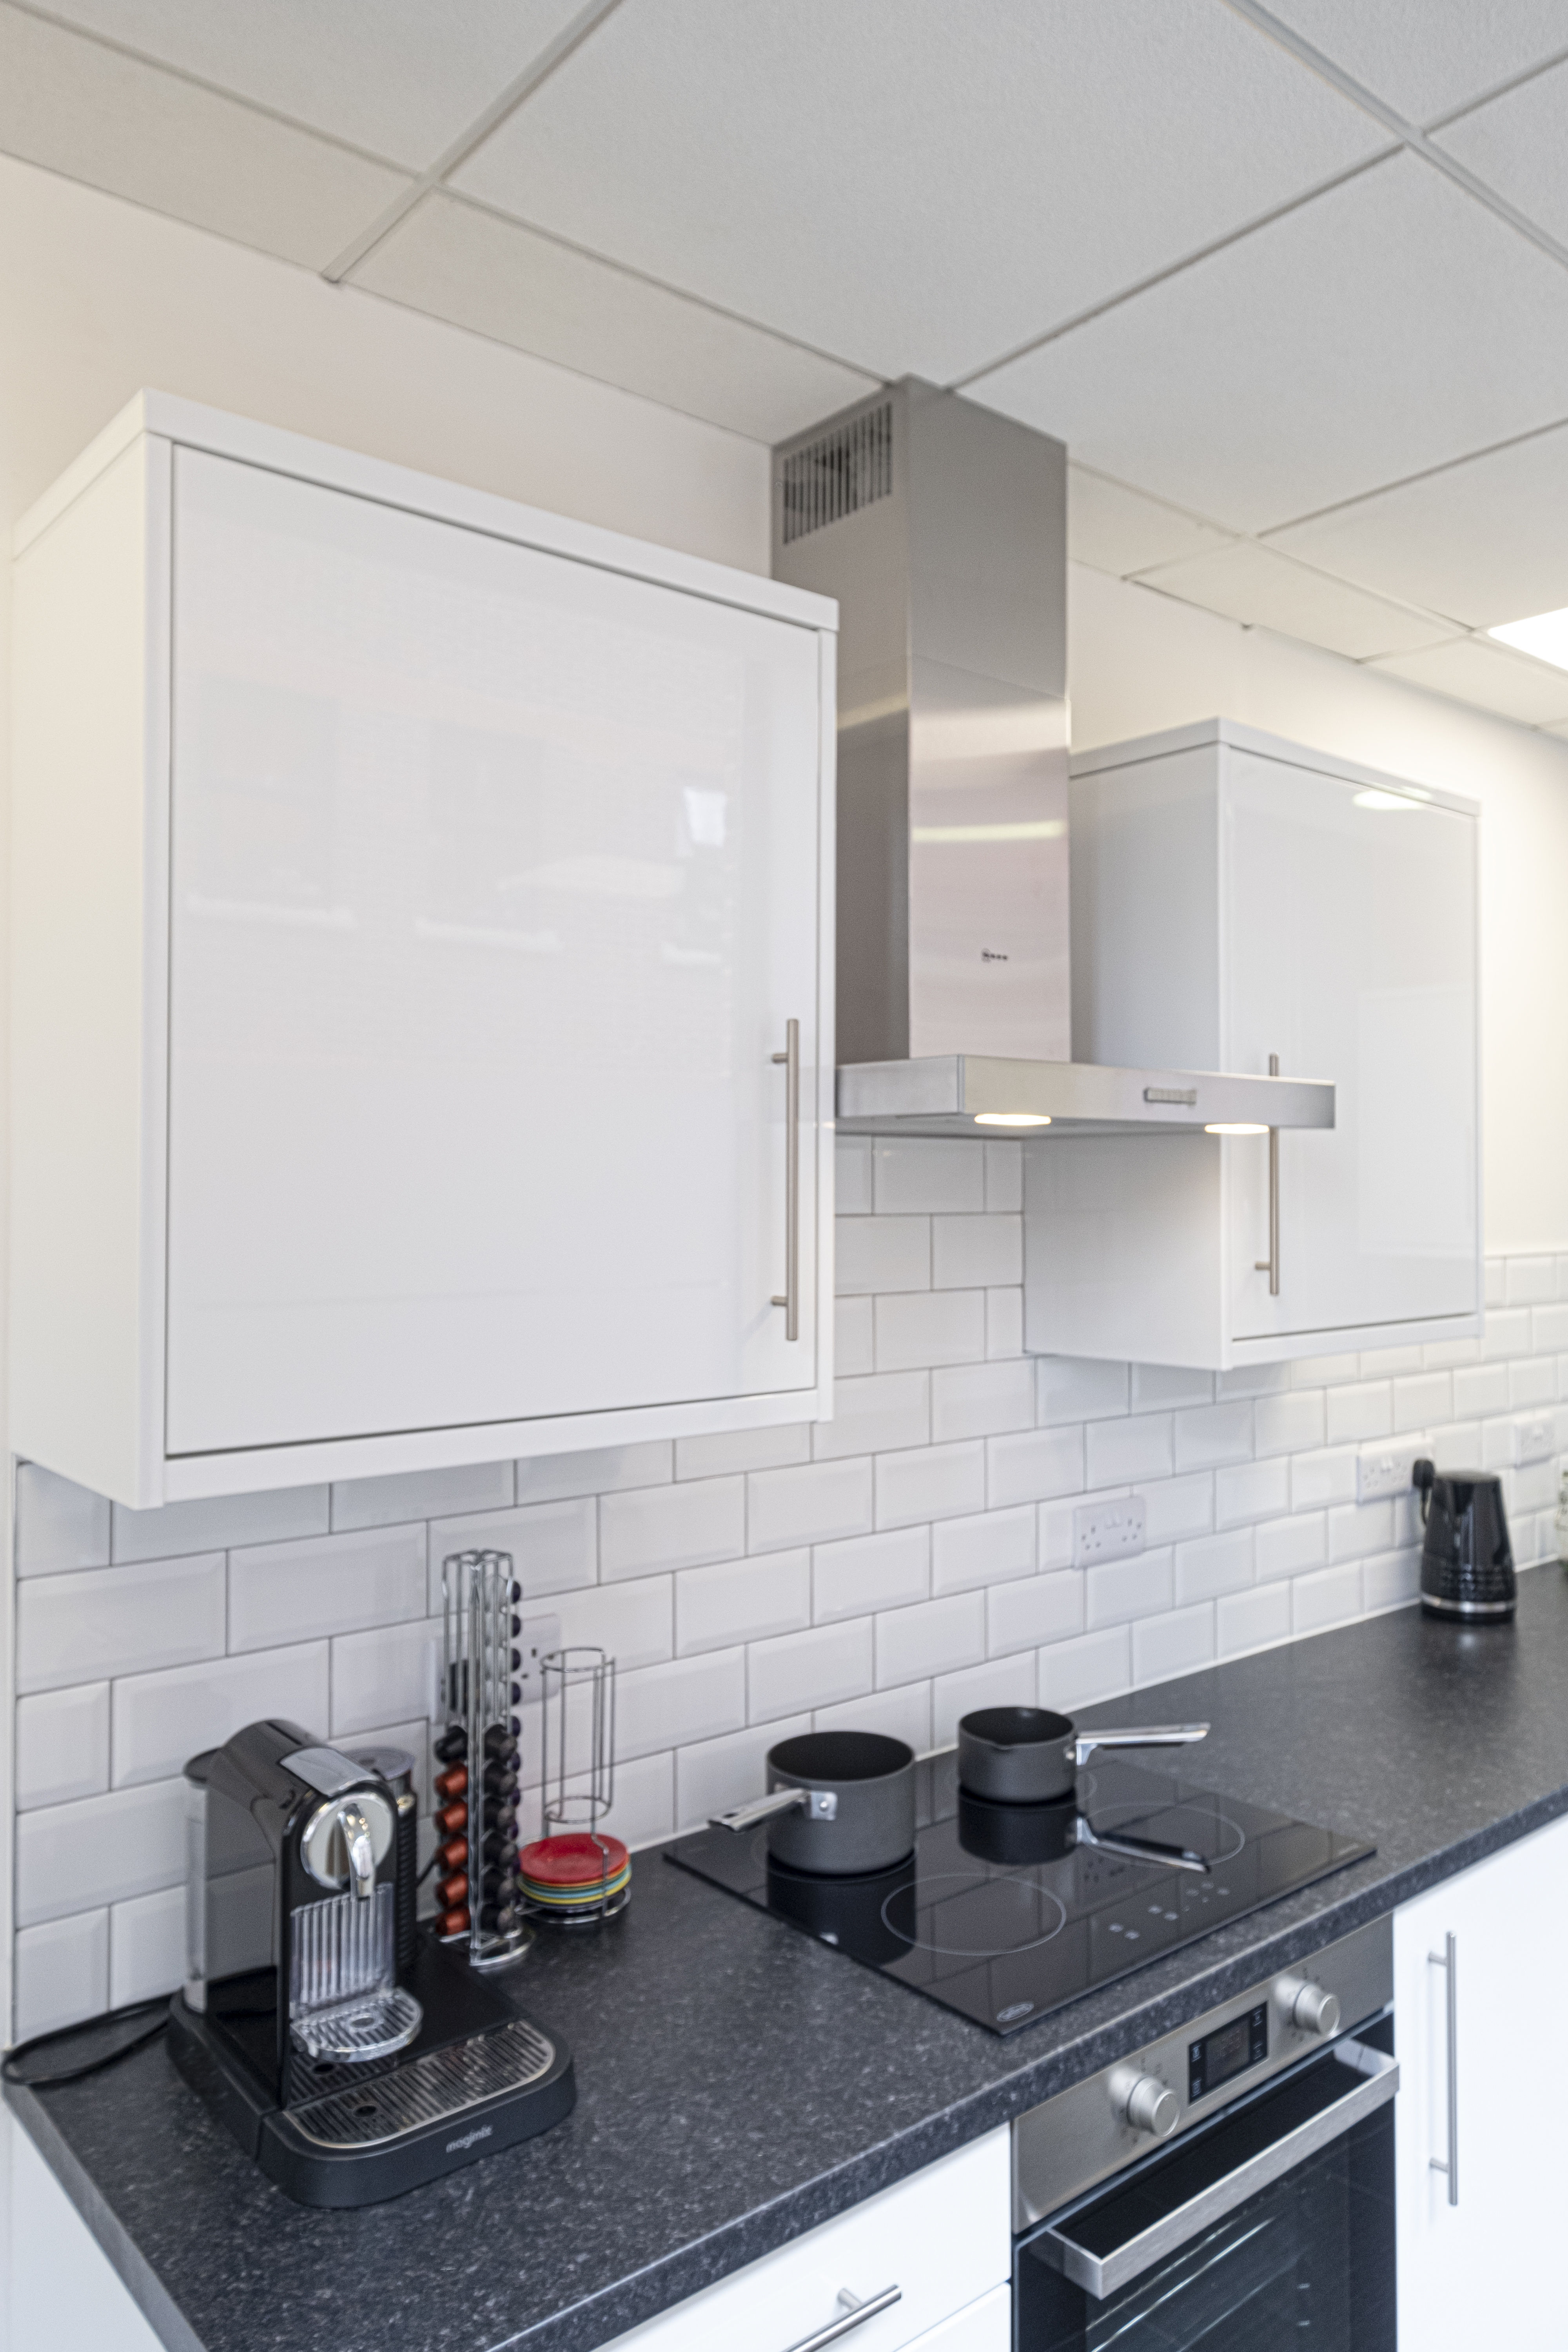 Office kitchen in white gloss by Charmaine ULYATE | Raison Home UK - 2